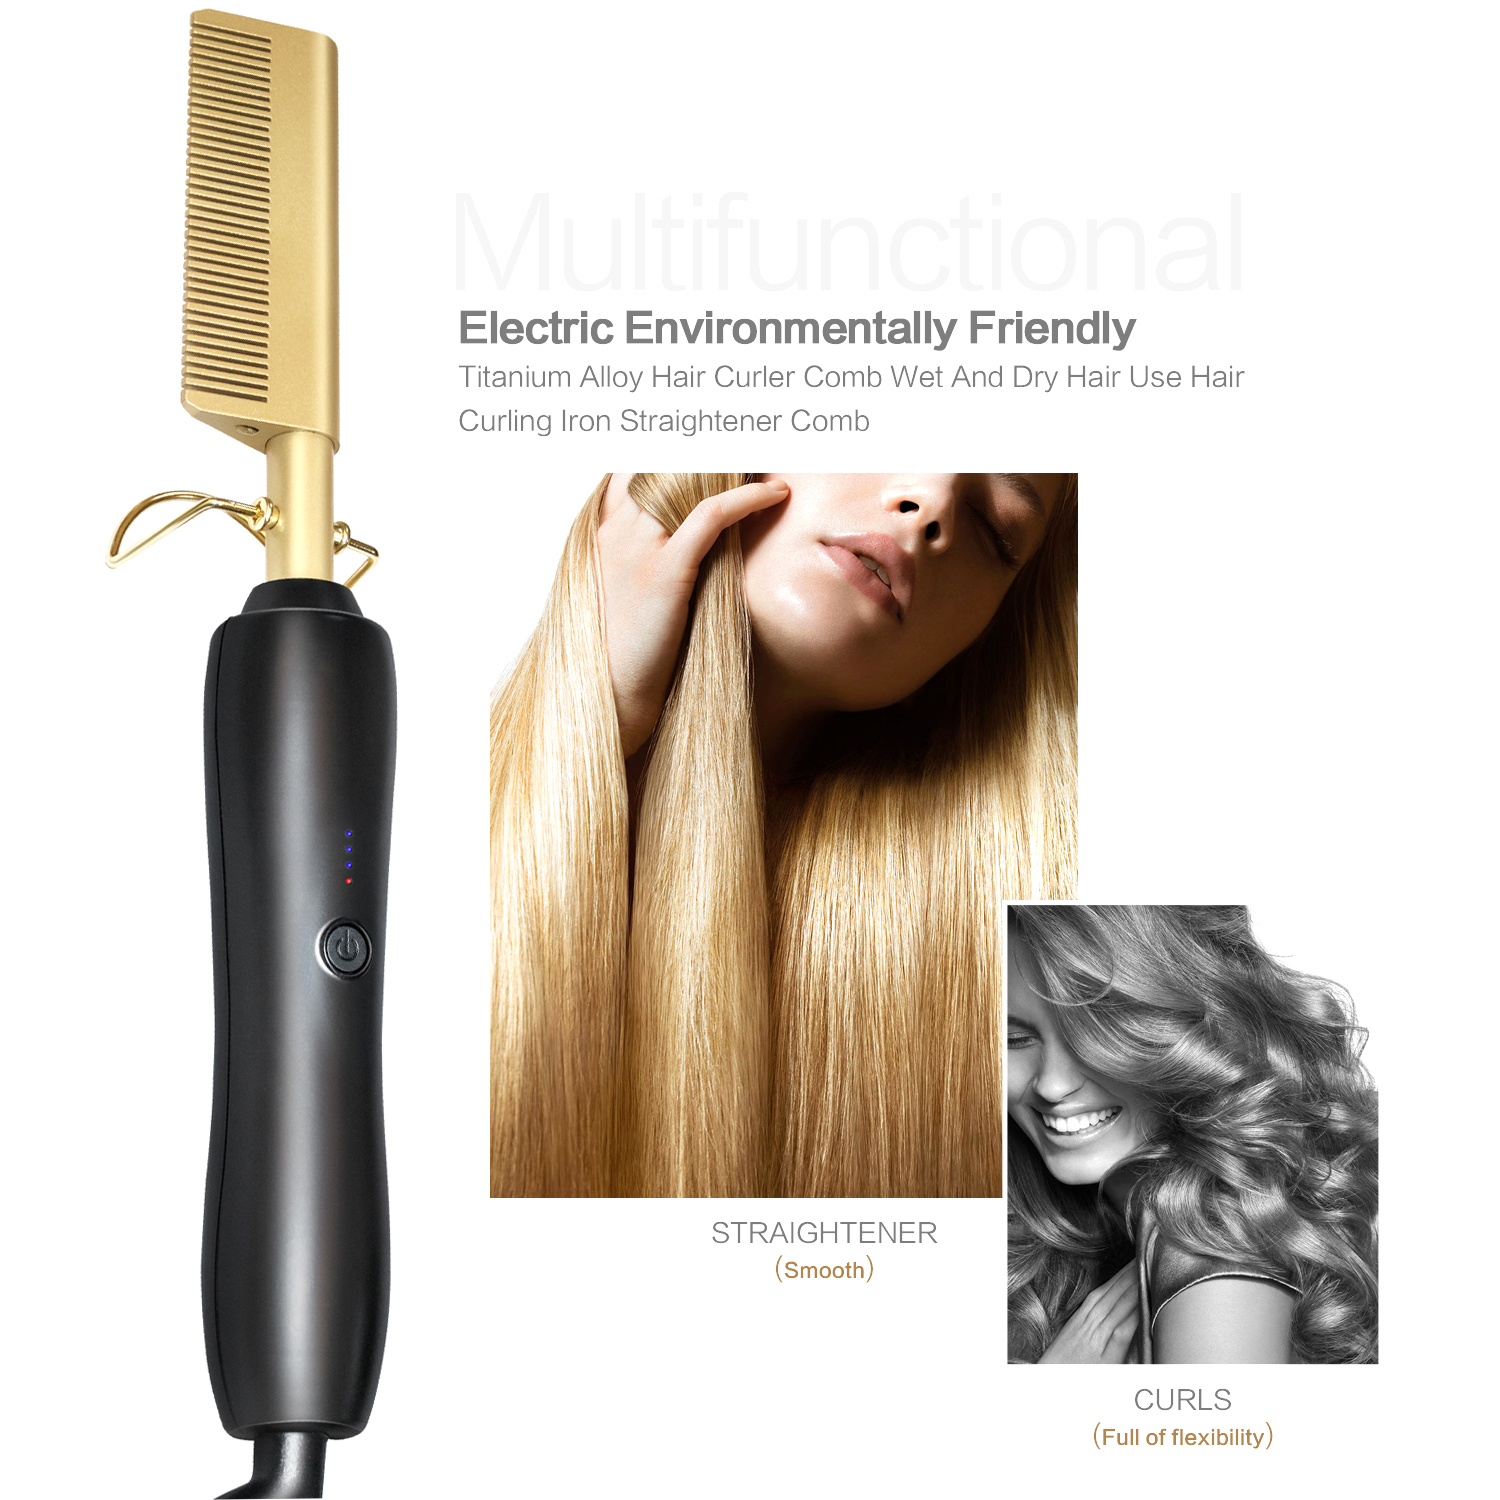 Hair Curler Iron Comb Wet Dry Hair Use Hair Curling Iron Straightener Comb Straightening Brush Electric Hot Comb Titanium Alloy